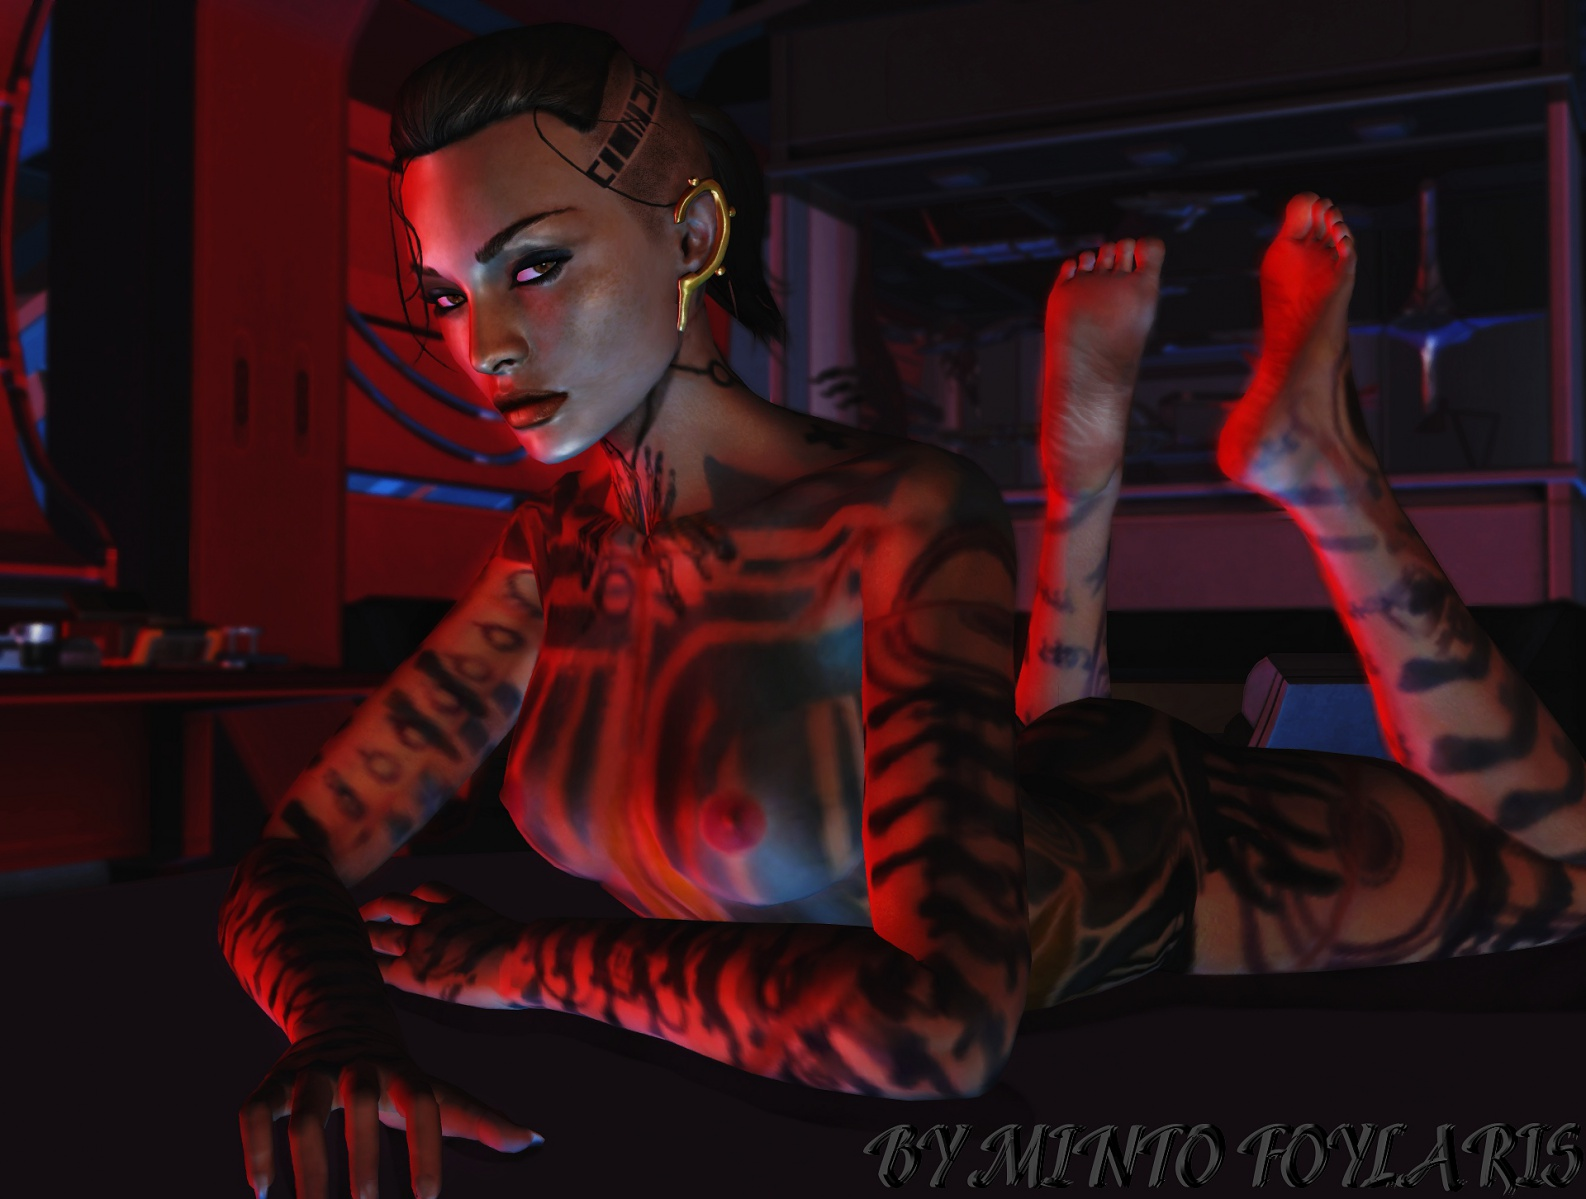 Erotic pics of jack mass effect porn video